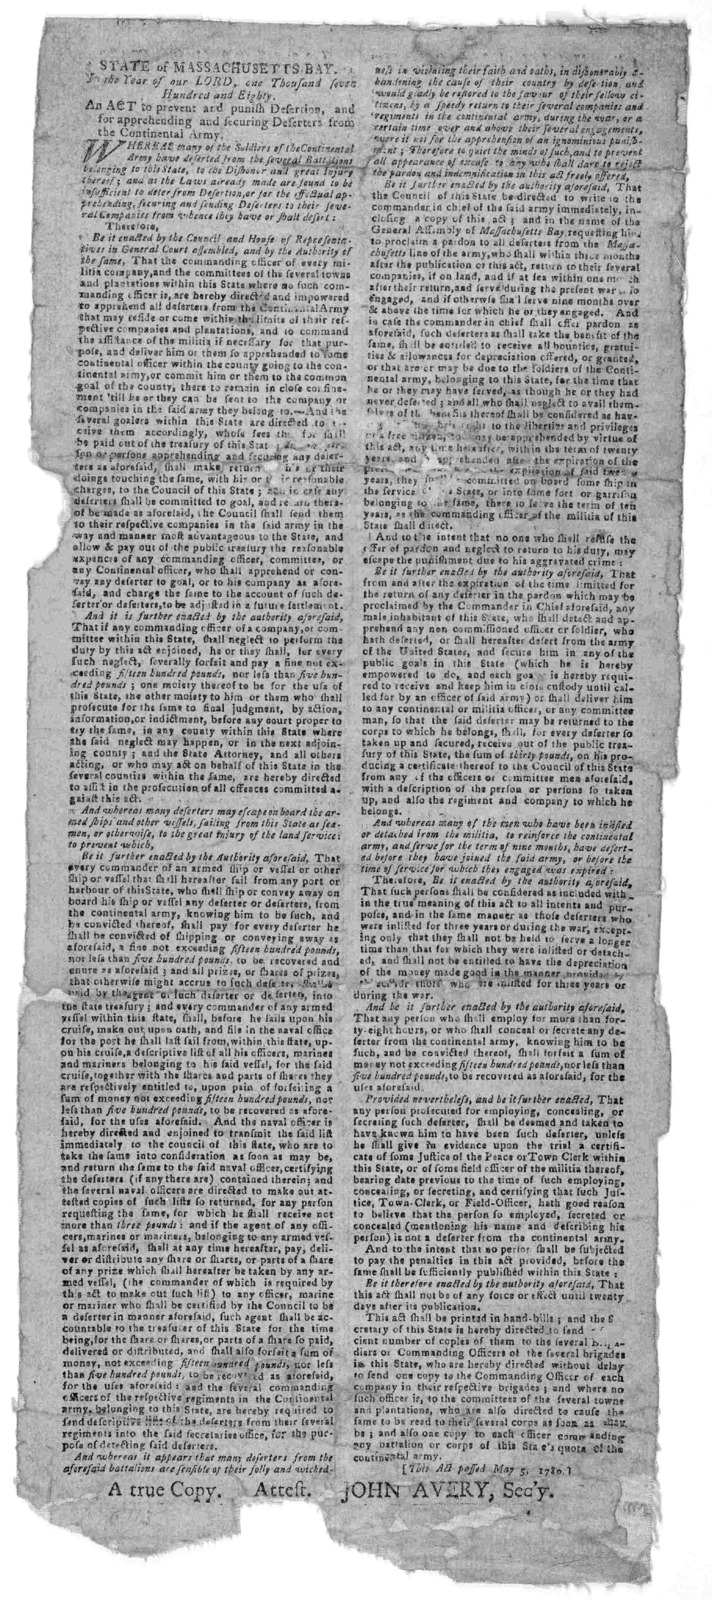 State of Massachusetts Bay. In the year of our Lord one thousand seven hundred and eighty. An act to prevent and punish desertion and for apprehending and securing deserters form the Continental army ... This act passed May 5, 1780. A true copy.